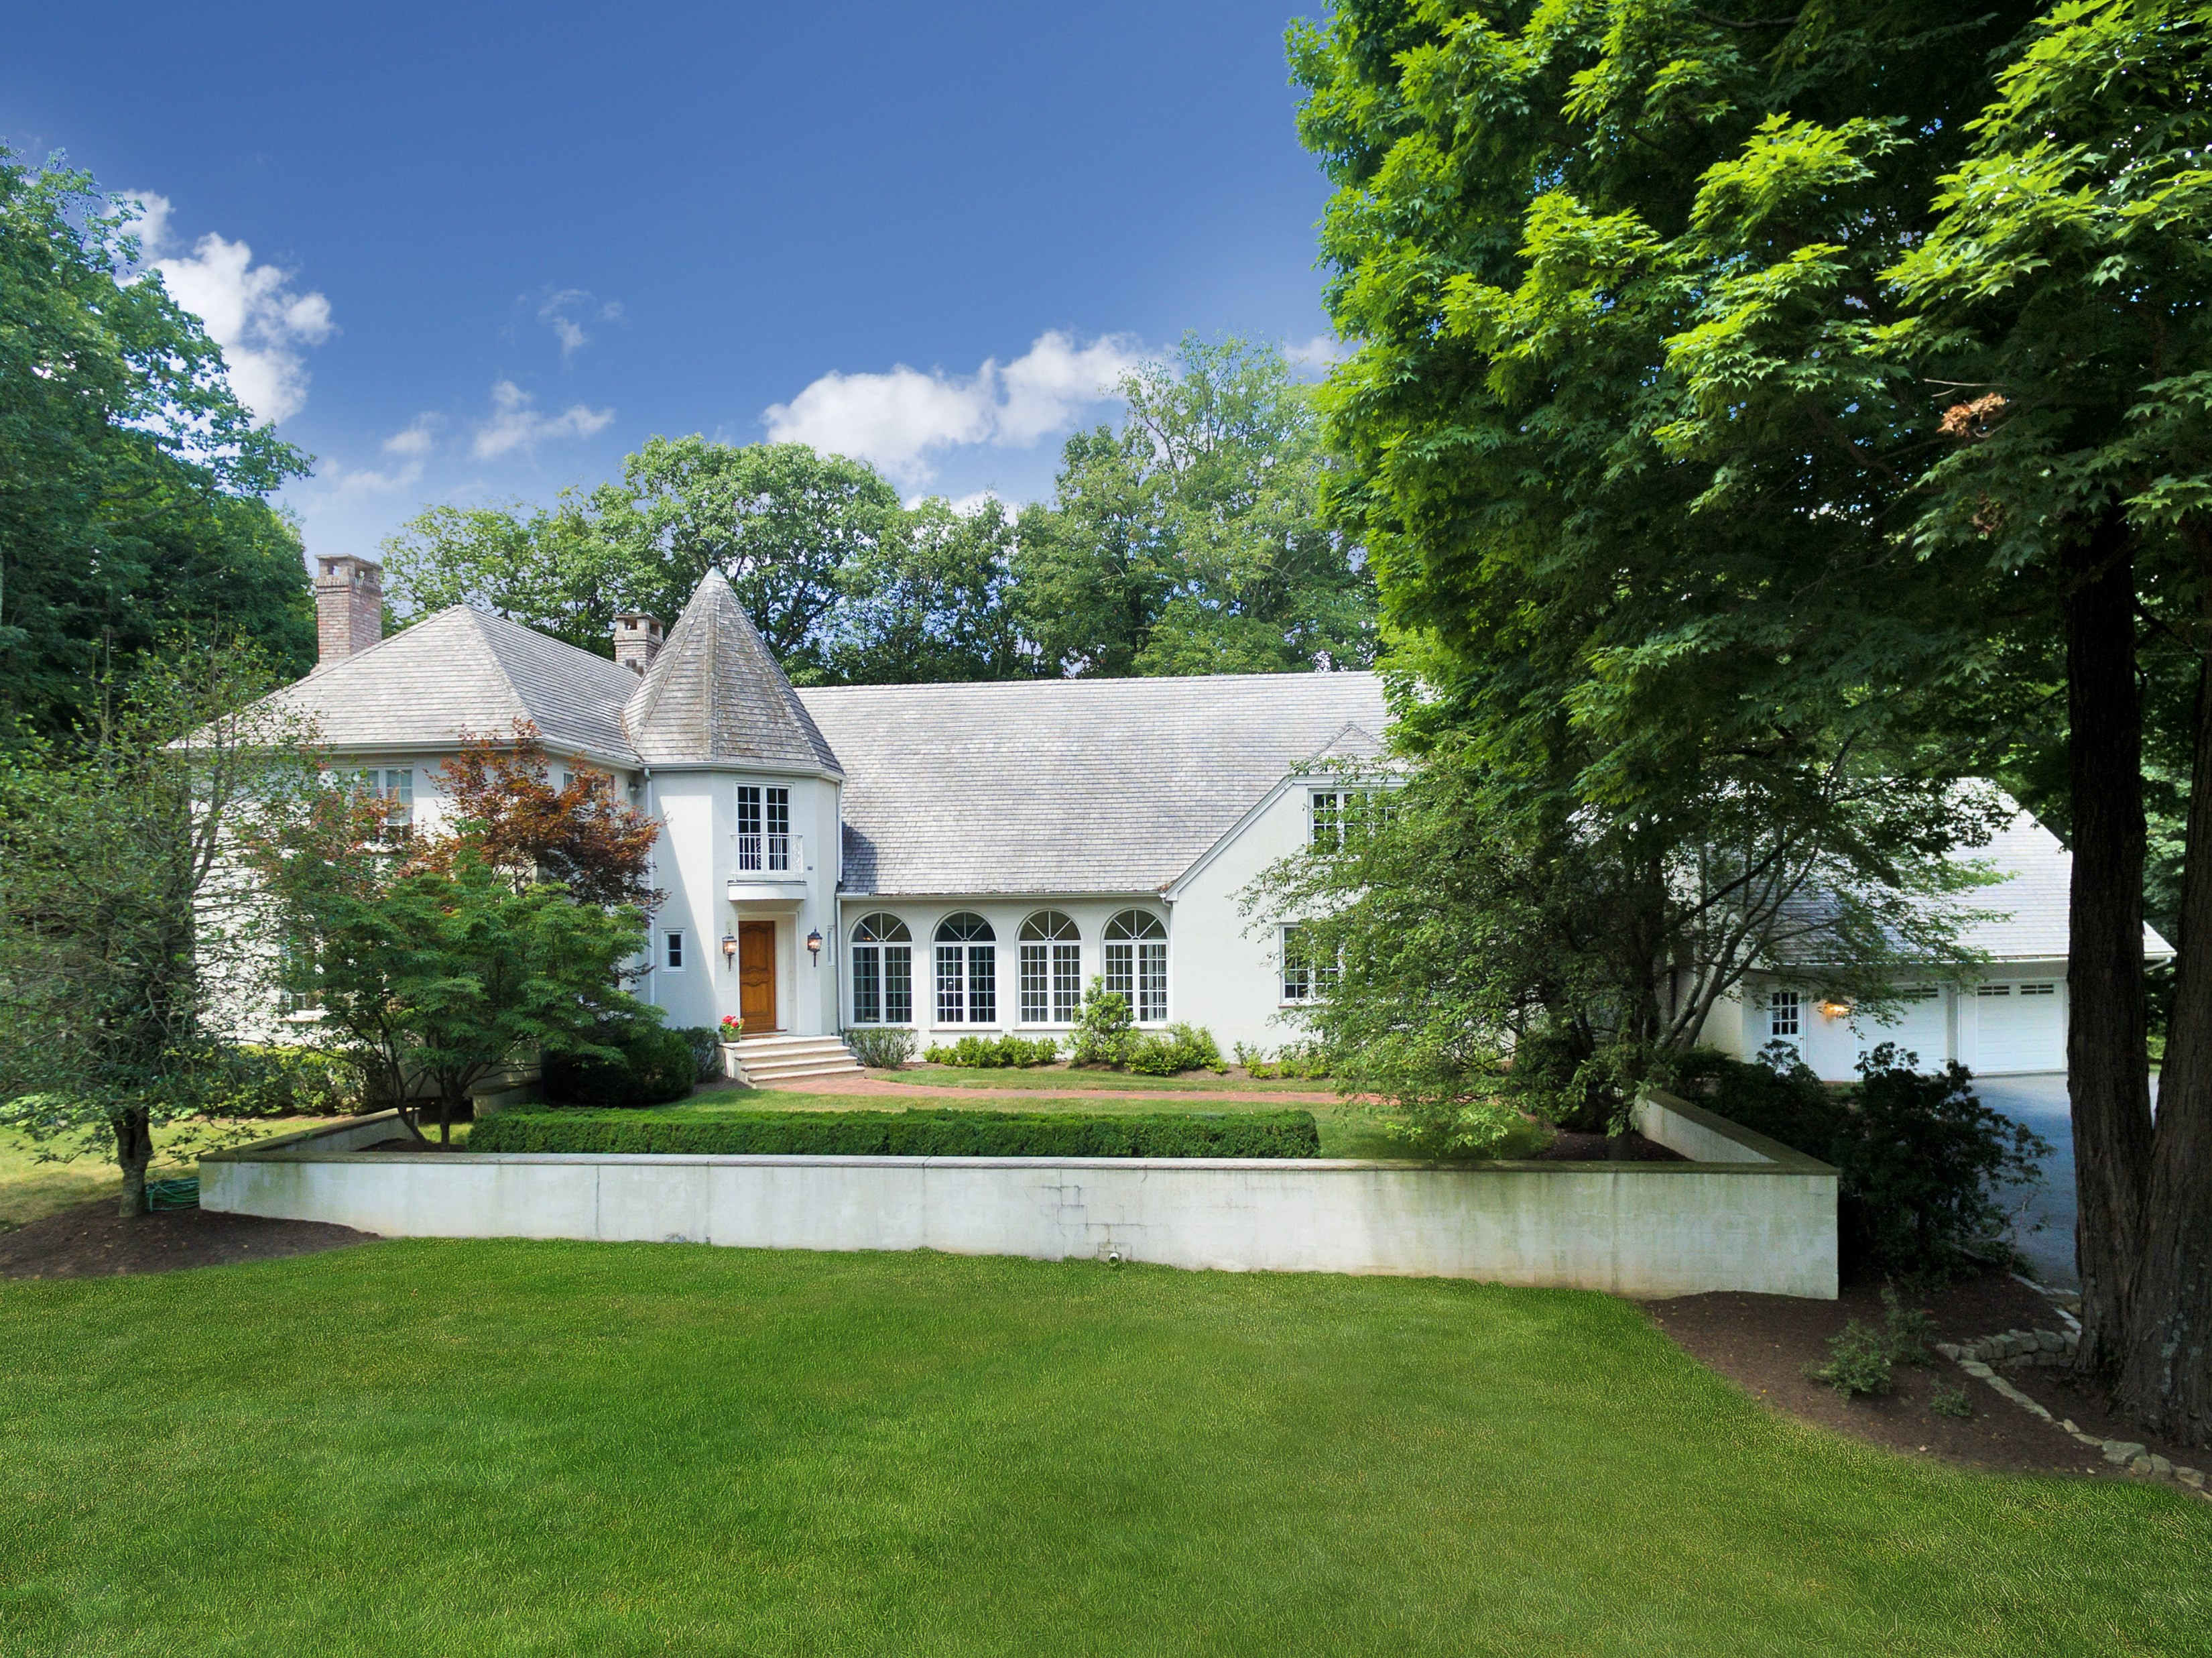 Single Family Home for Sale at Peaceful. Private. Perfect. 43 Skyline Drive Bernardsville, New Jersey, 07924 United States